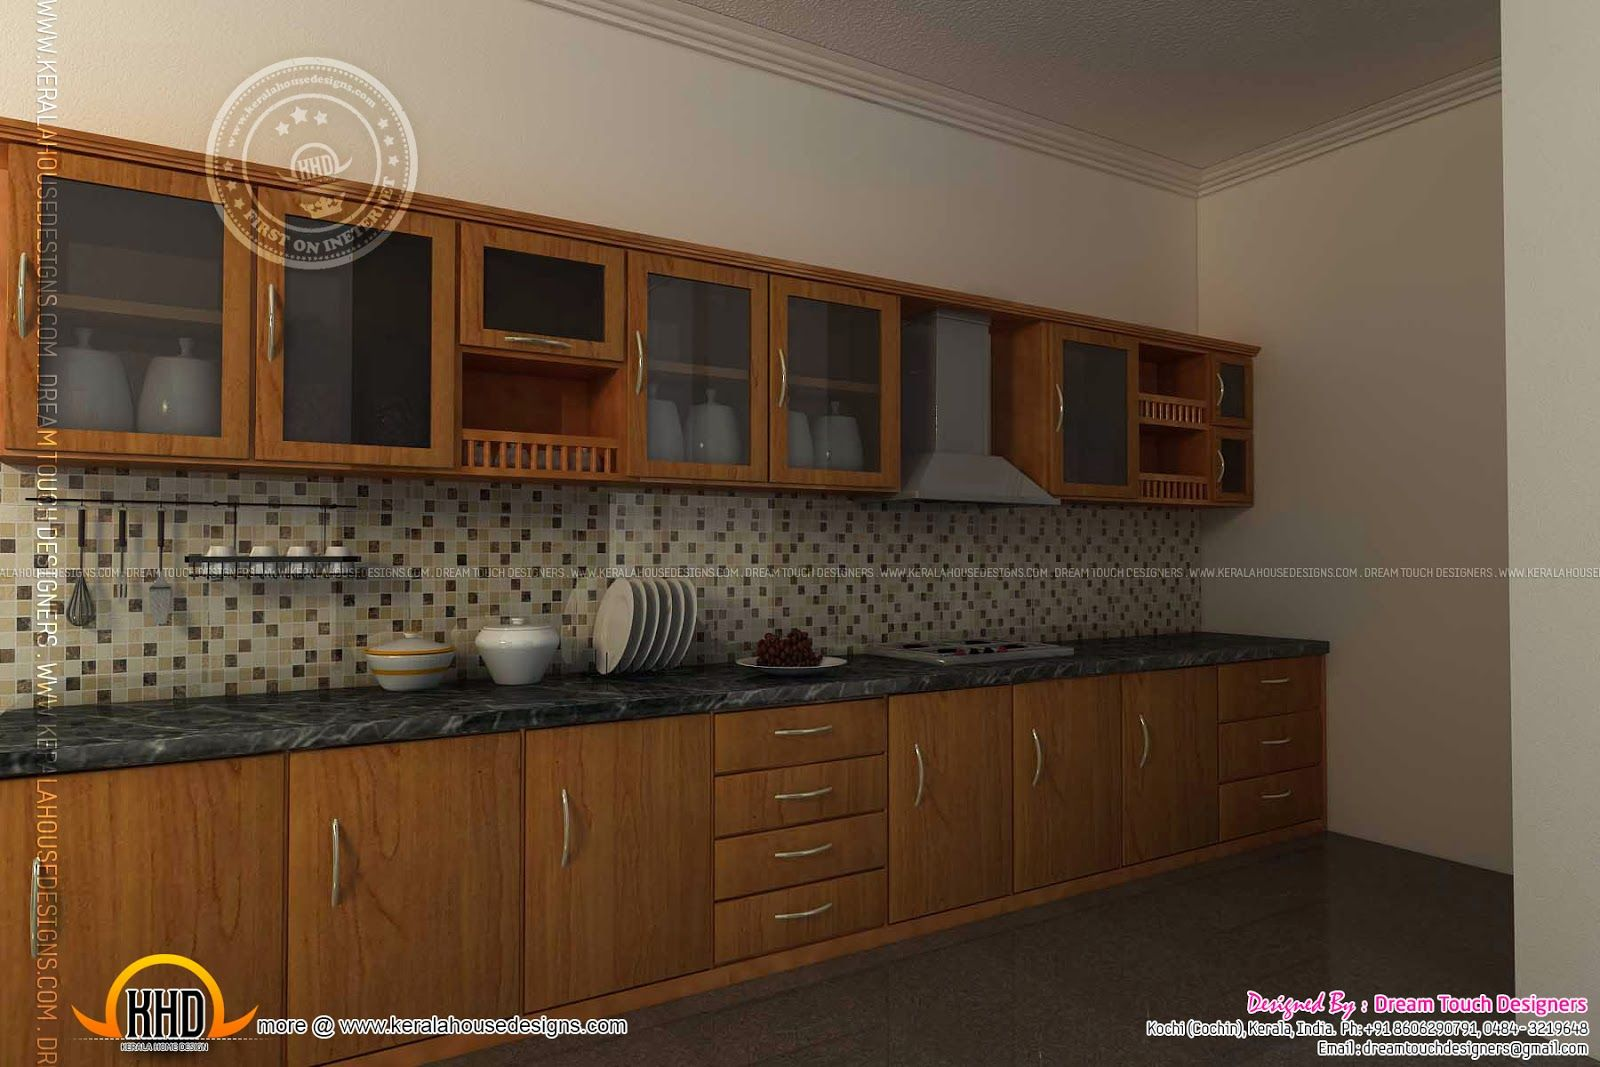 Kitchen cabinet doors in bangalore first time in india architect - Kitchen Interiors Contact Interior Design Kochi Ernakulam Kitchen Interior Views Ss Architects Cochin Home Kerala Plans